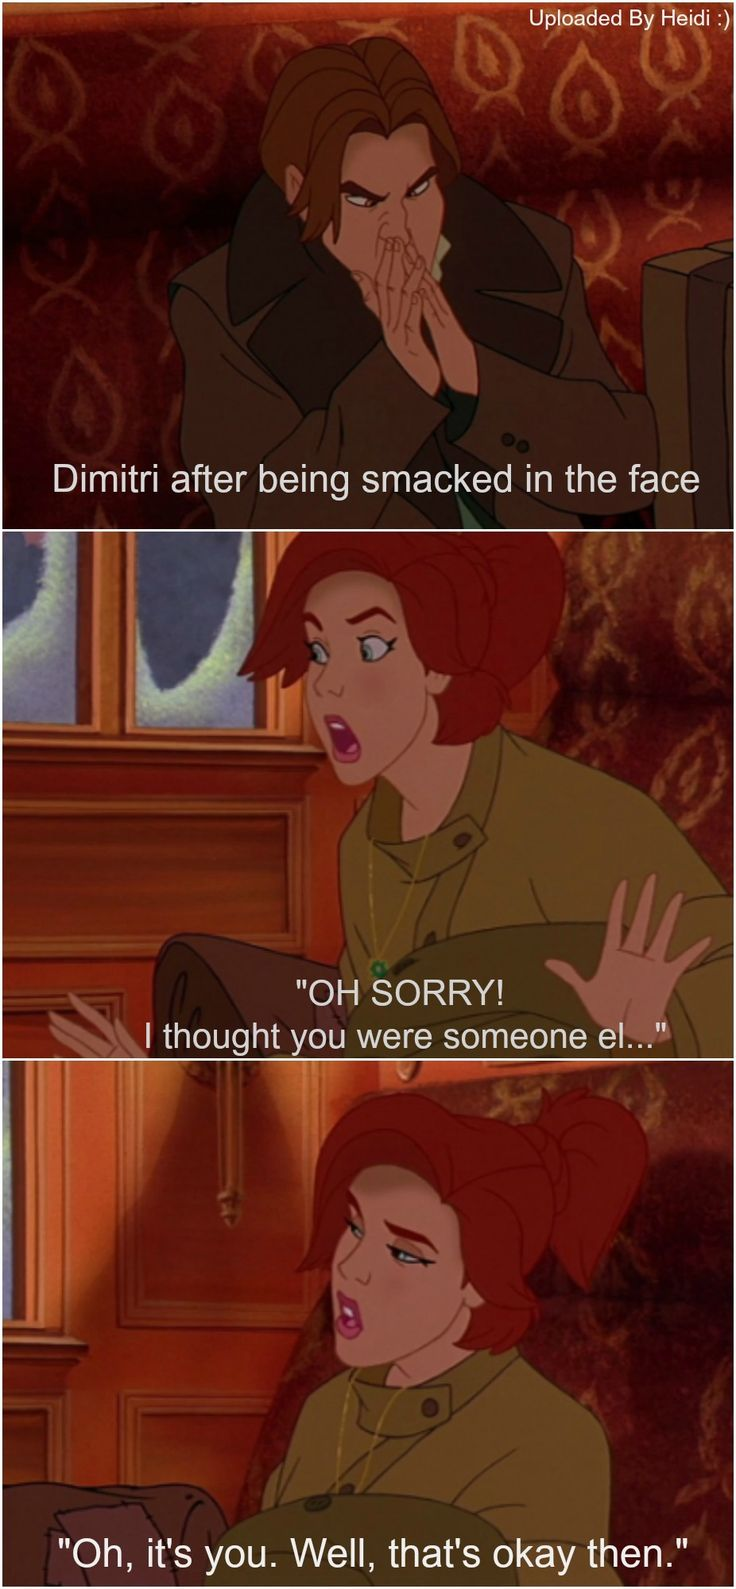 HAHAHA, gotta love Anastasia. I know its not Disney, bit its one of the best animated movies I have seen.